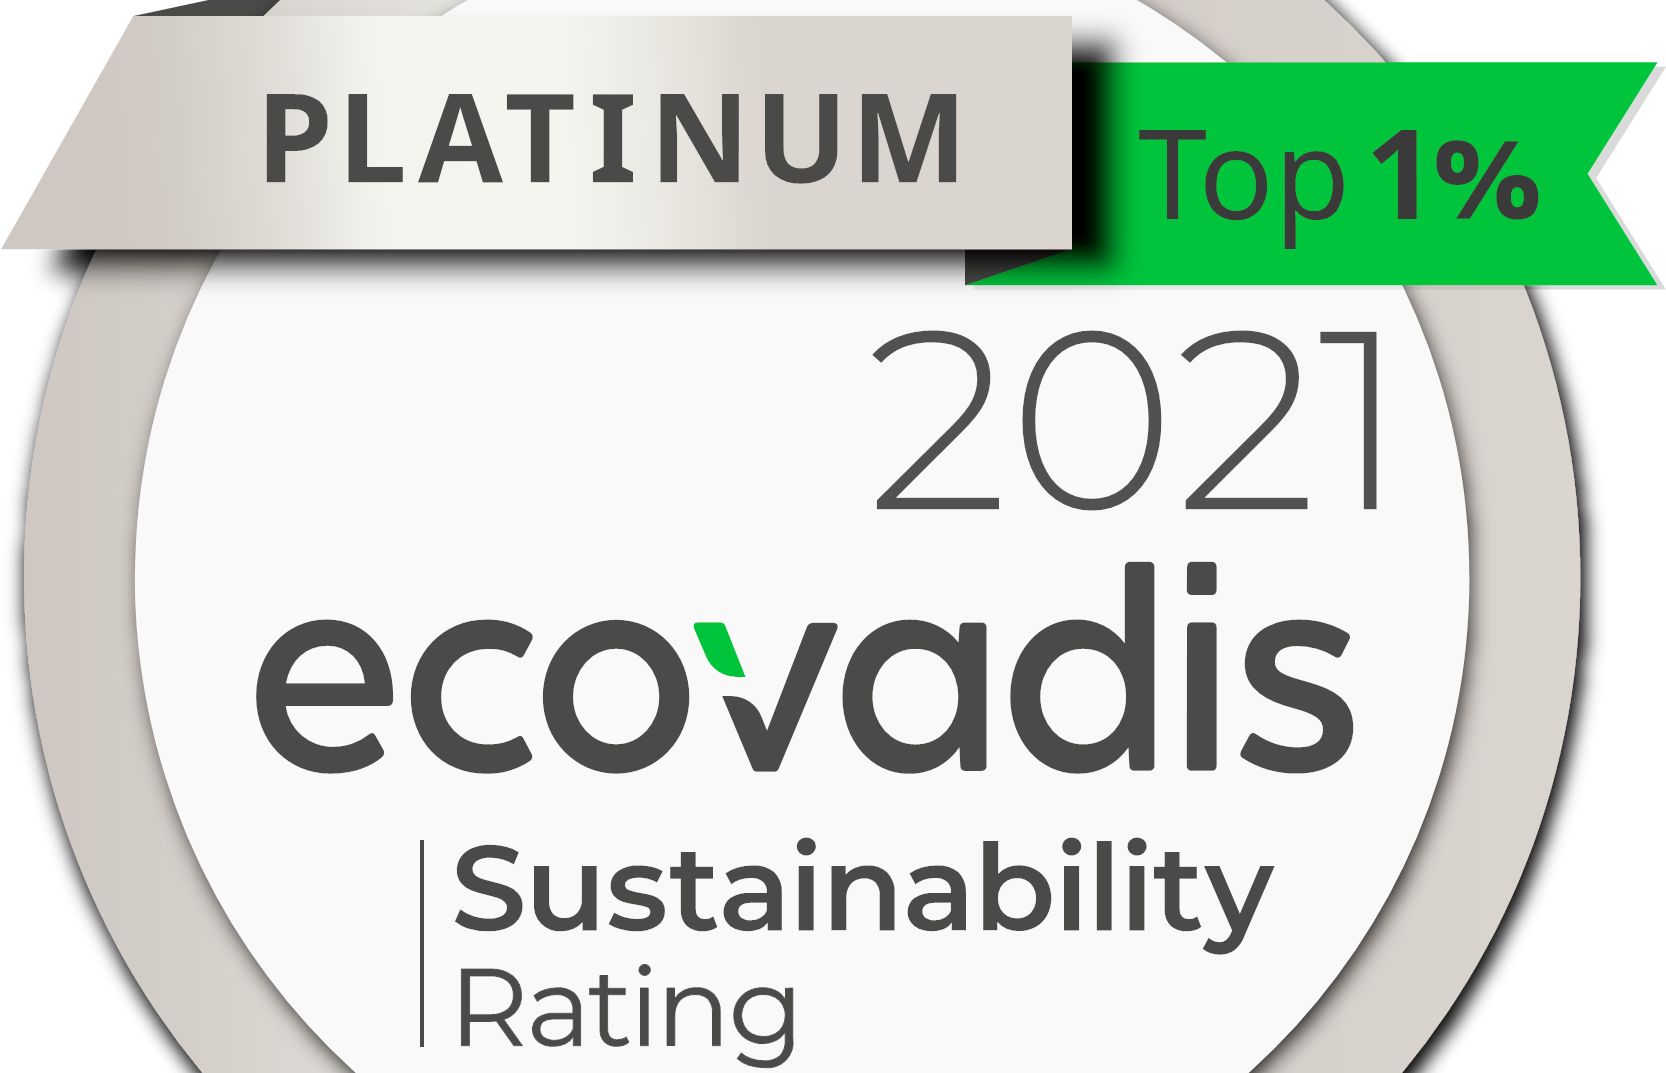 Tyre industry suppliers Nynas, Cabot and Evonik amongst top EcoVadis ratings